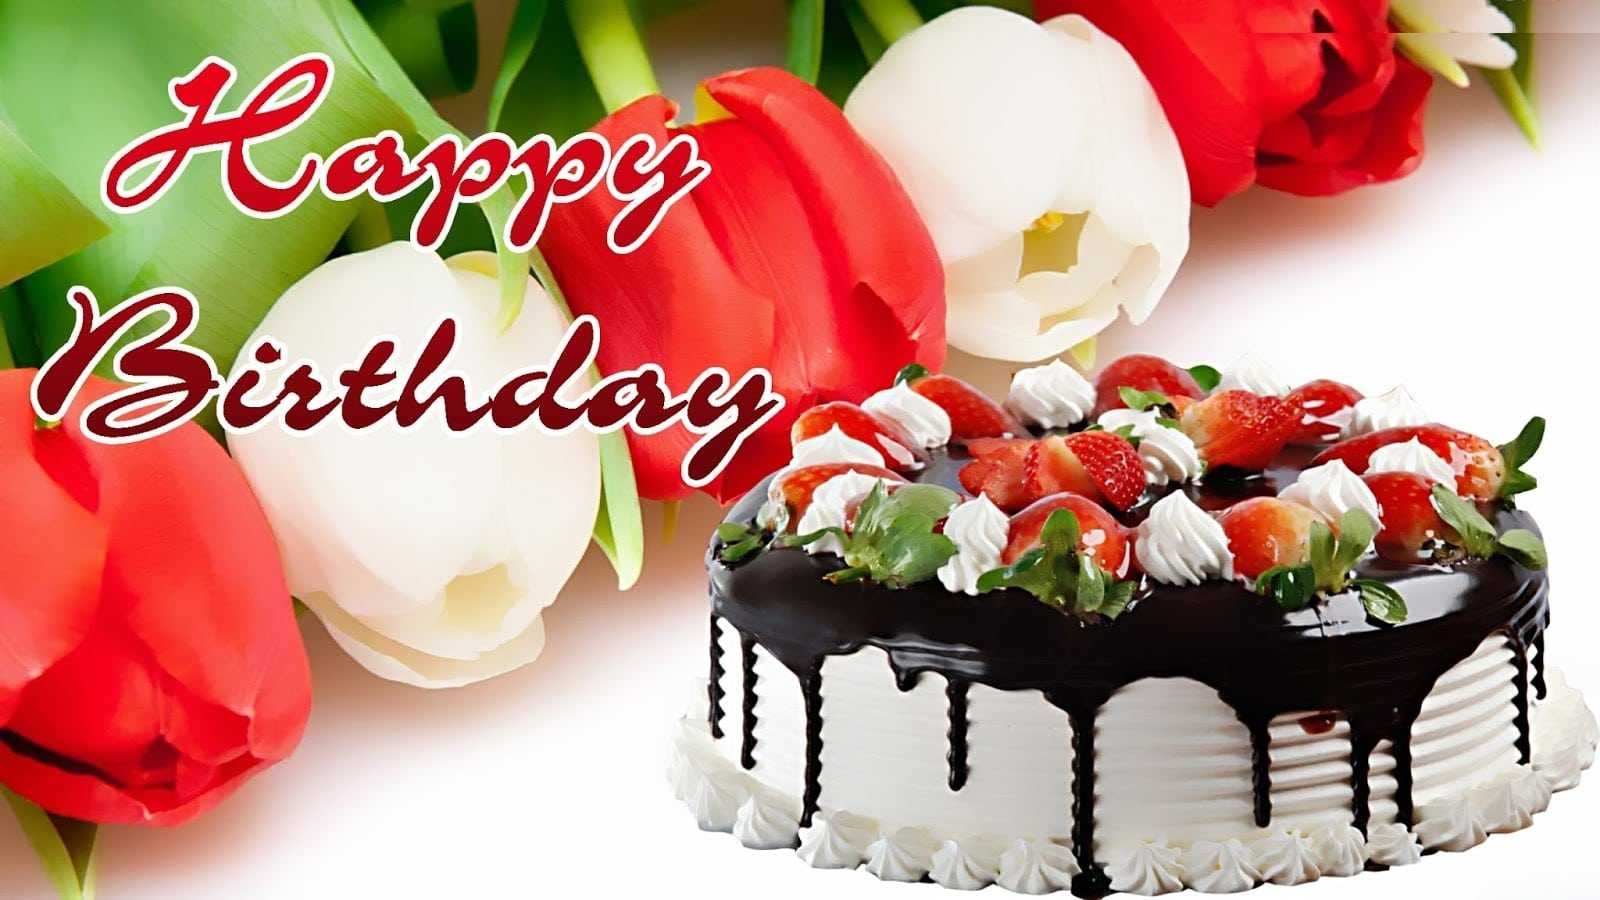 Download Birthday Cake Pictures Free : Advance Happy Birthday Wishes Hd Images Free Download ...